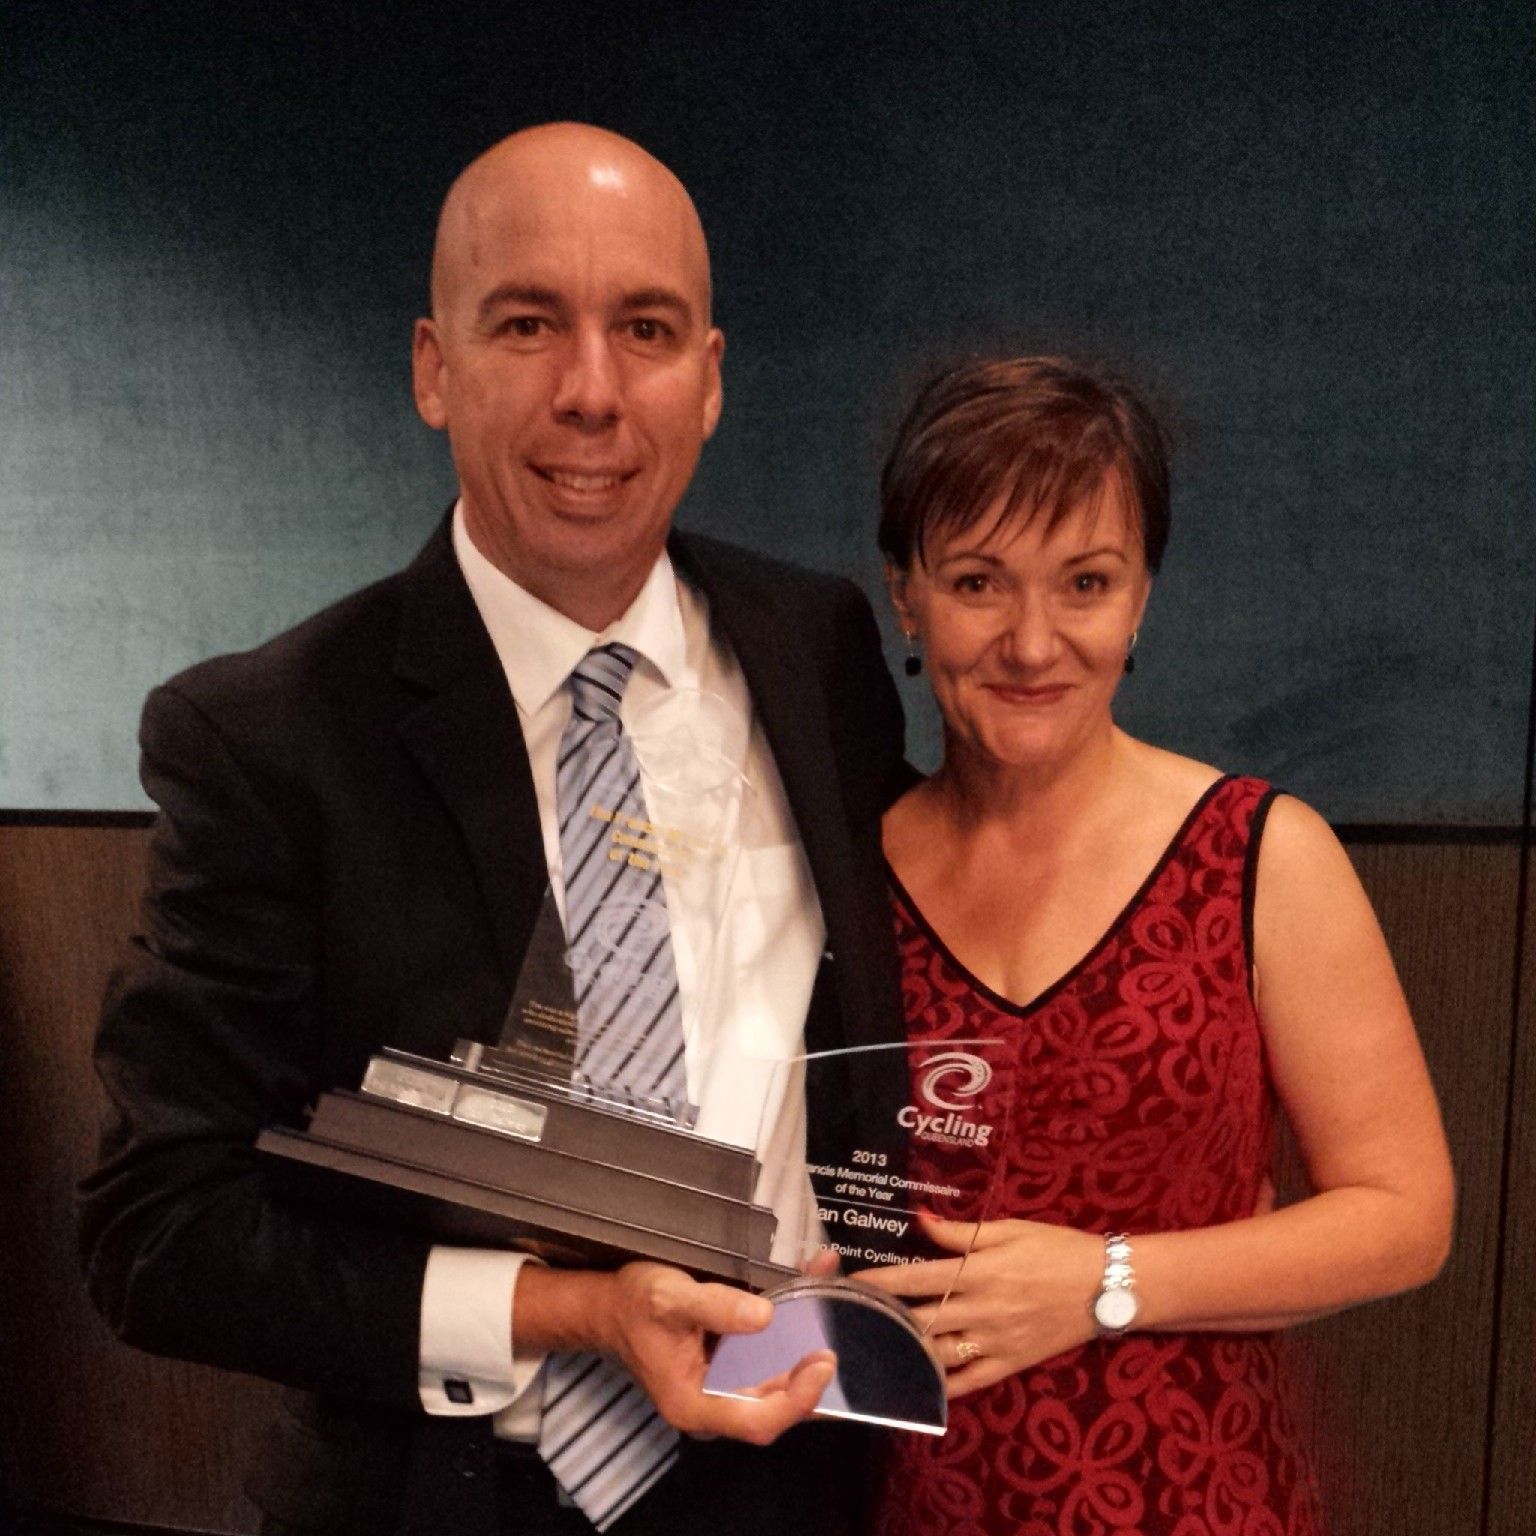 Mr Ian Galwey pictured with wife Annette was awarded Cycling Queensland Commissaire of the Year.